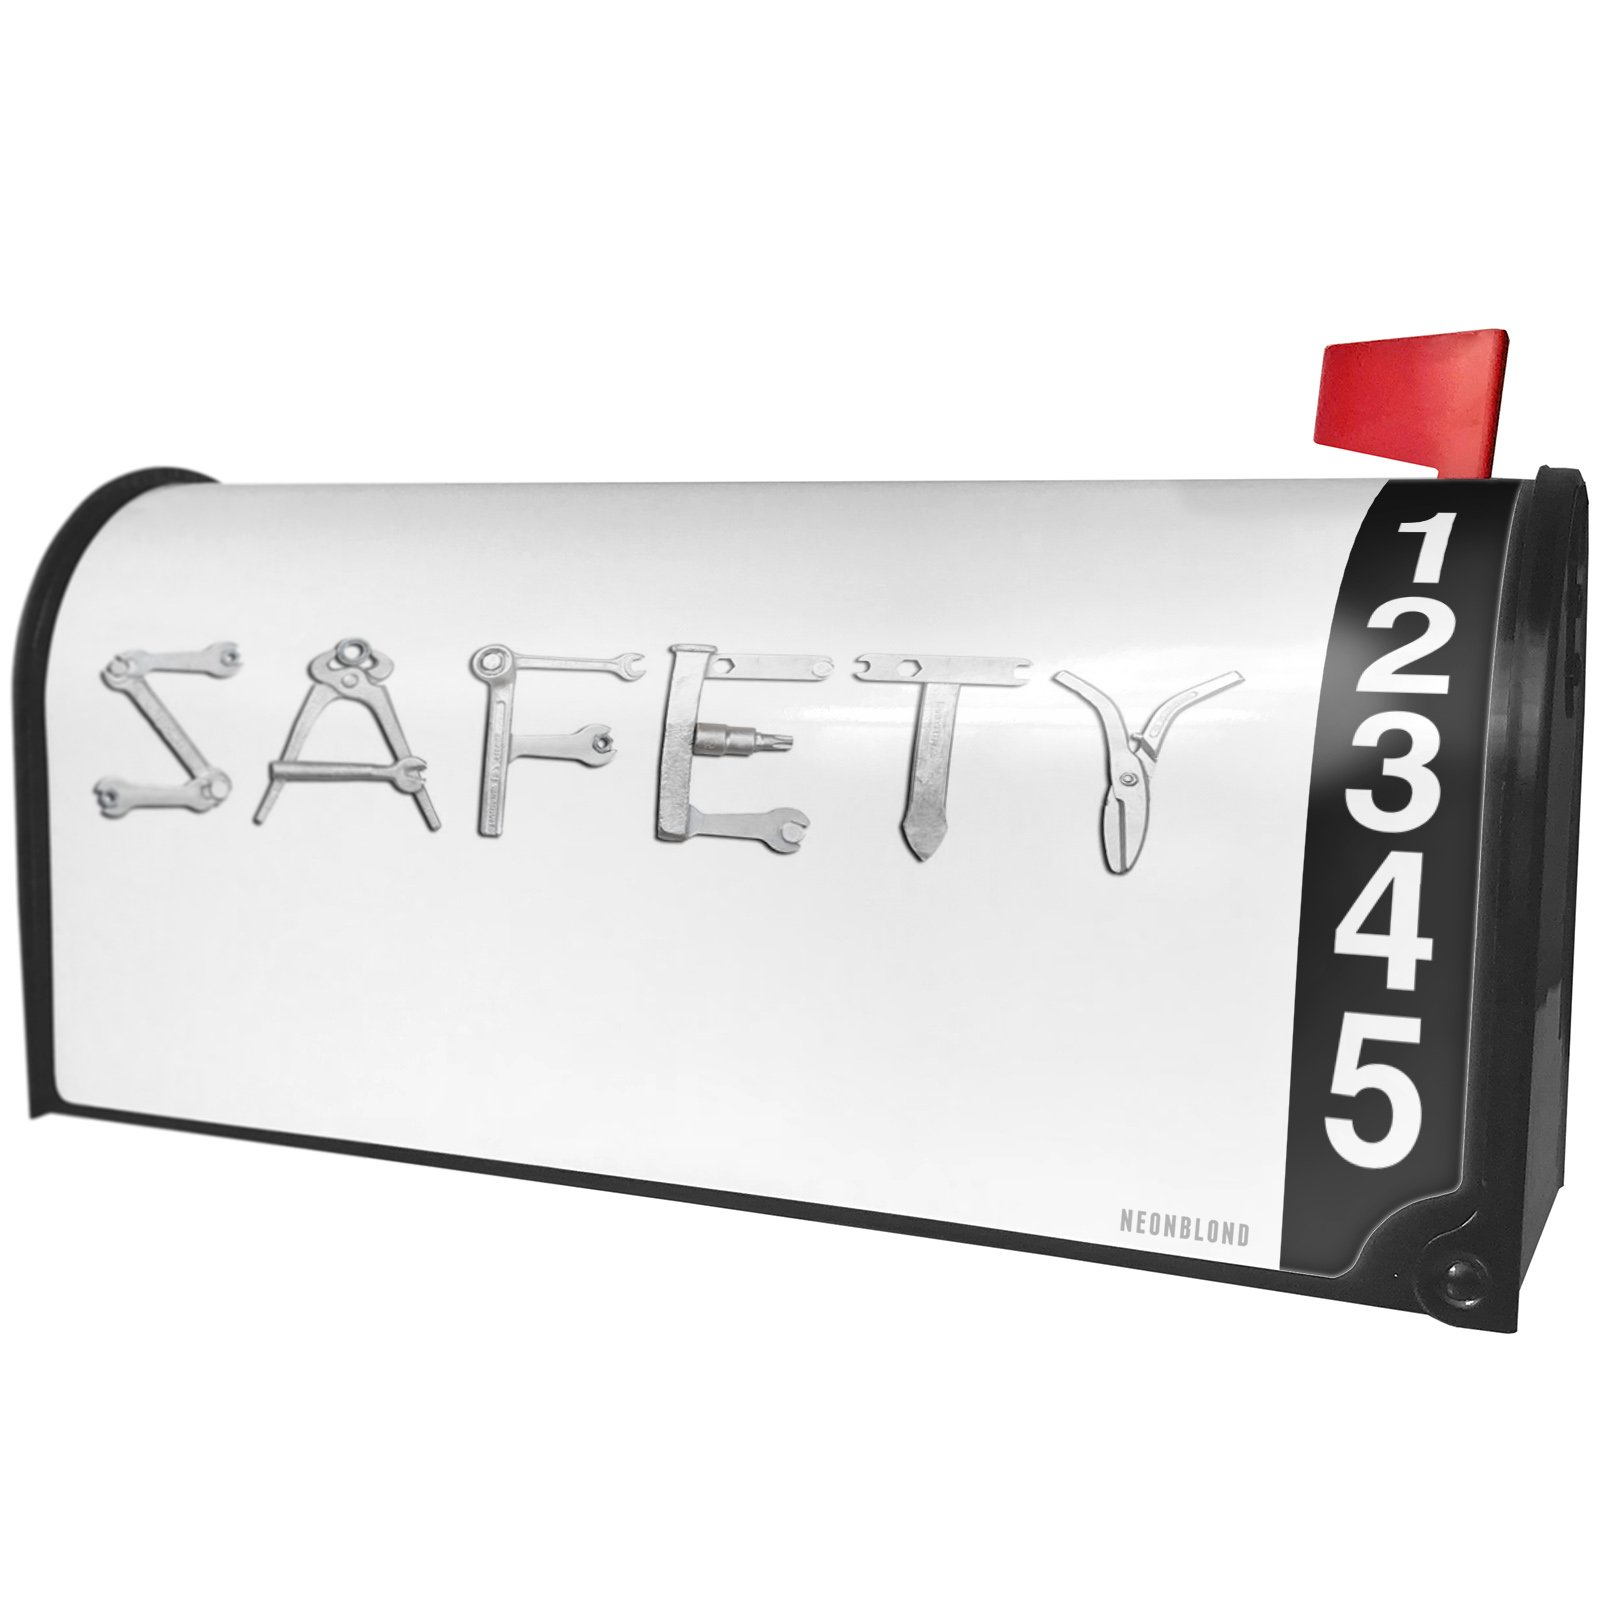 NEONBLOND Safety Tools Metal Looking Magnetic Mailbox Cover Custom Numbers